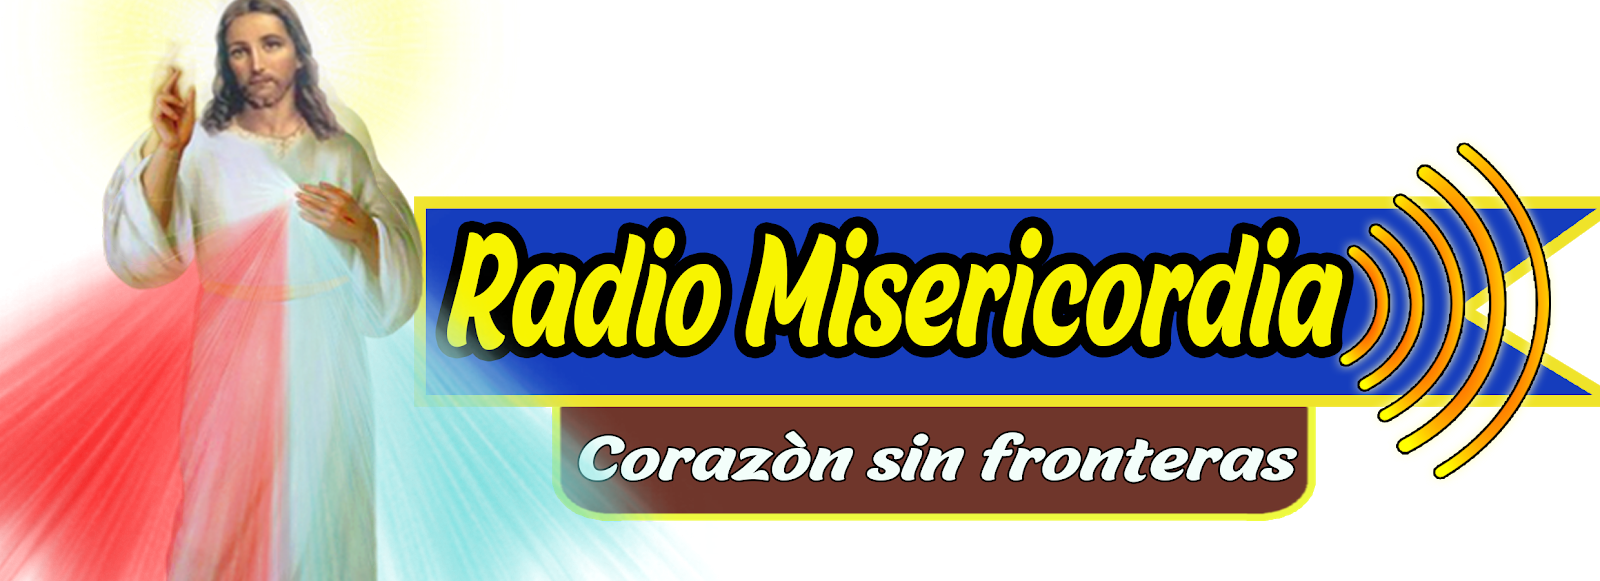 Radio Misericordia